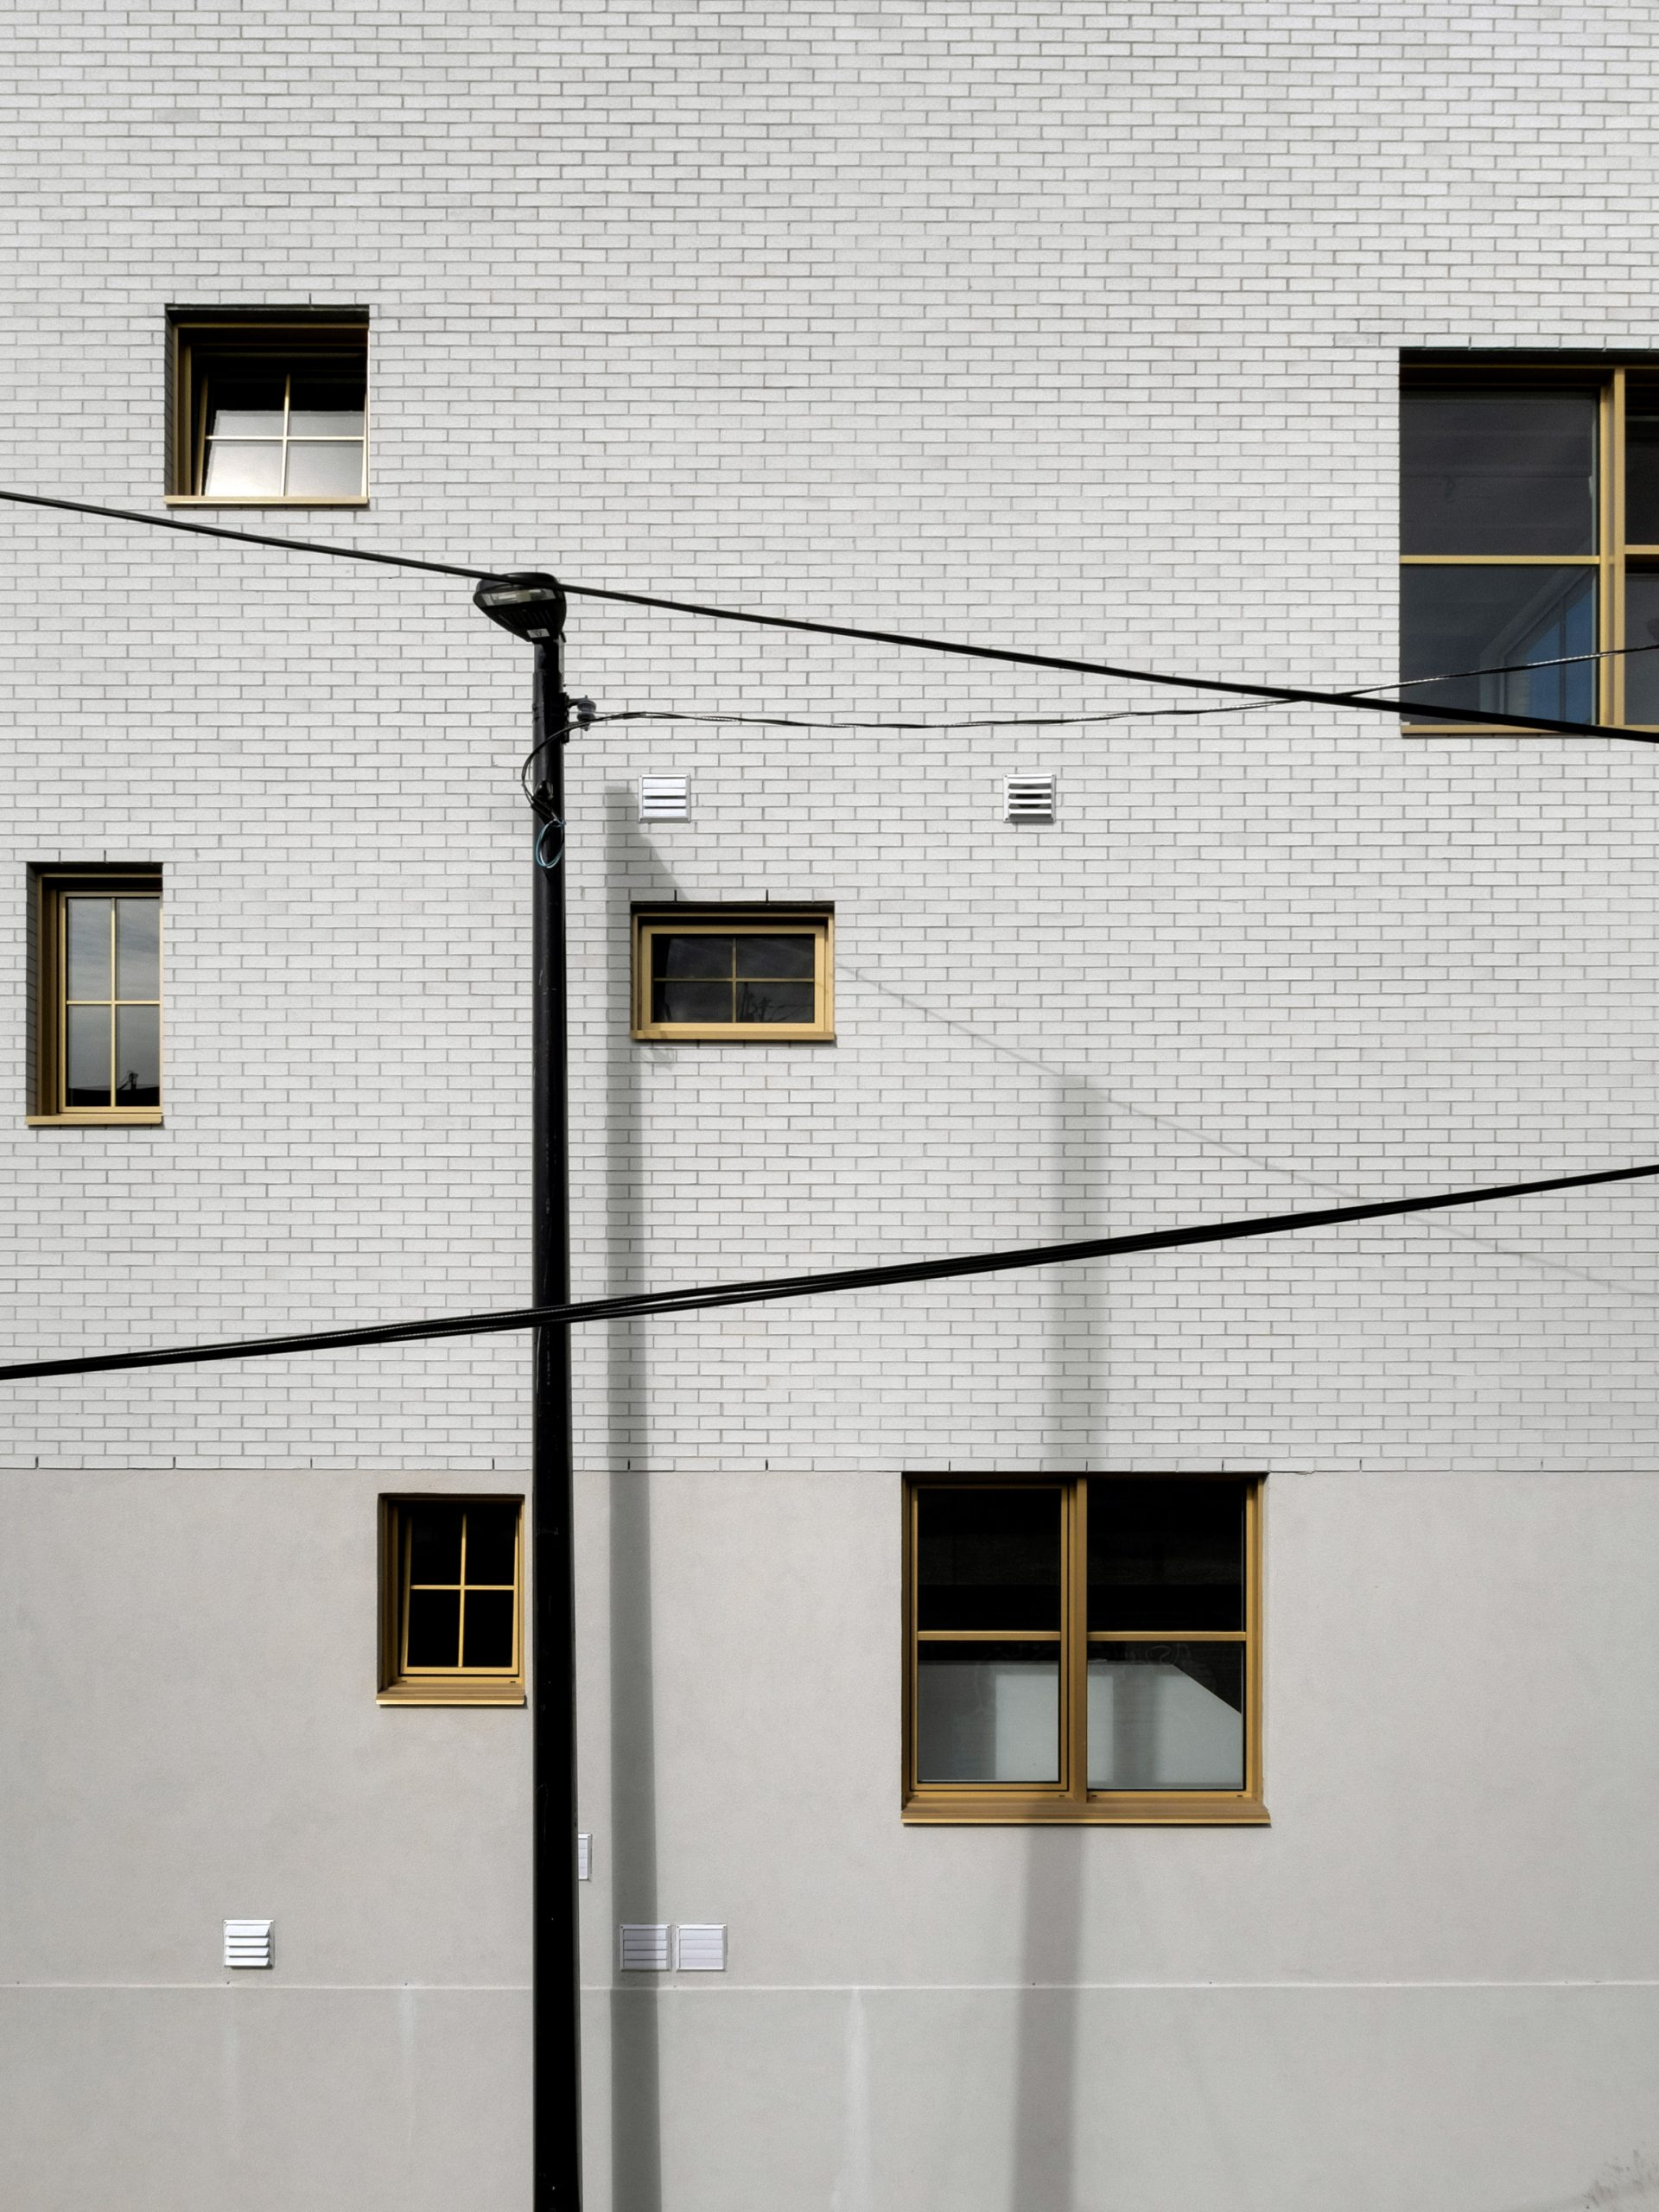 Windows of NMBDH by Jean Verville in Montreal